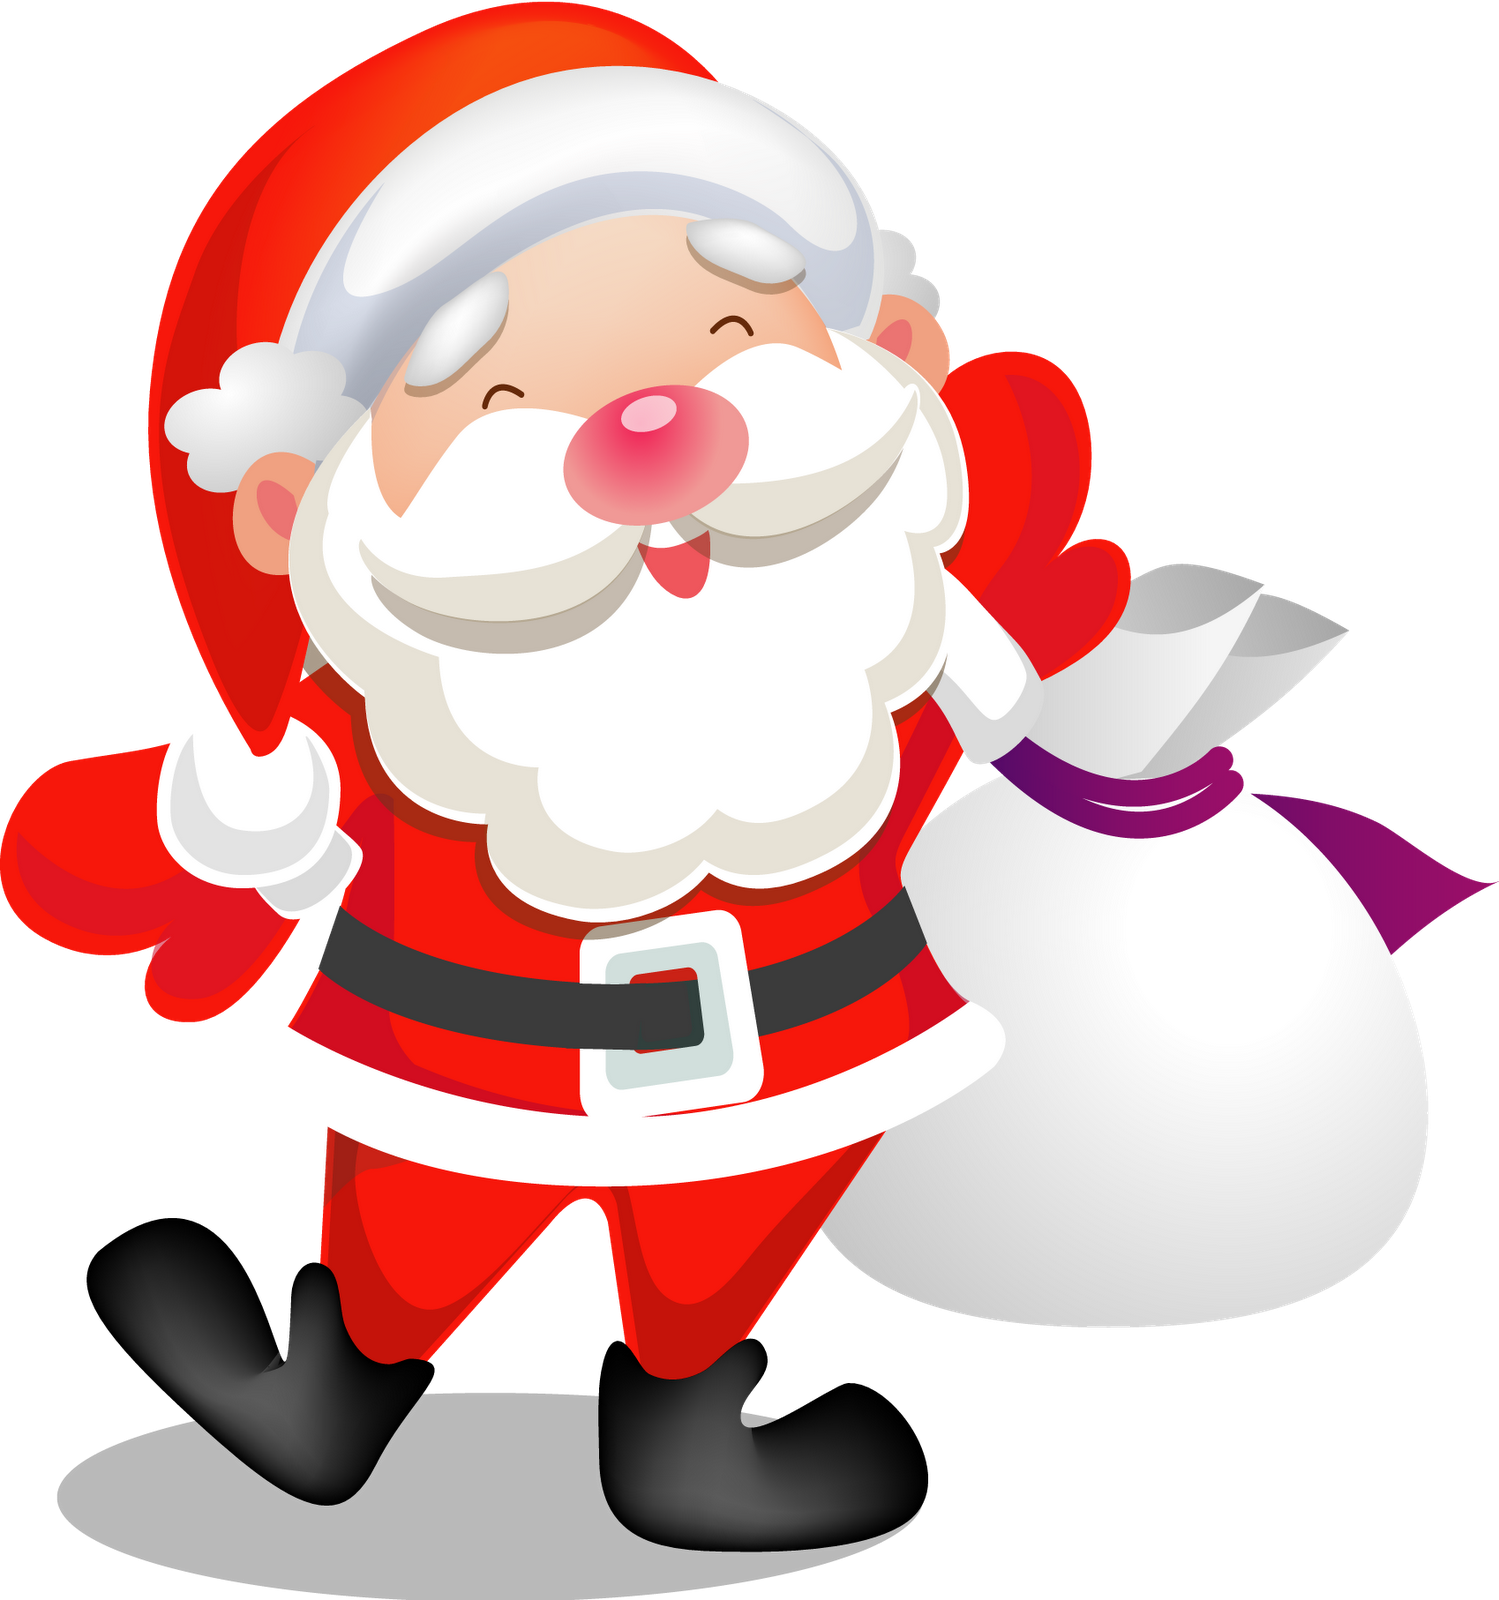 Saco do papai noel clipart images gallery for free download.